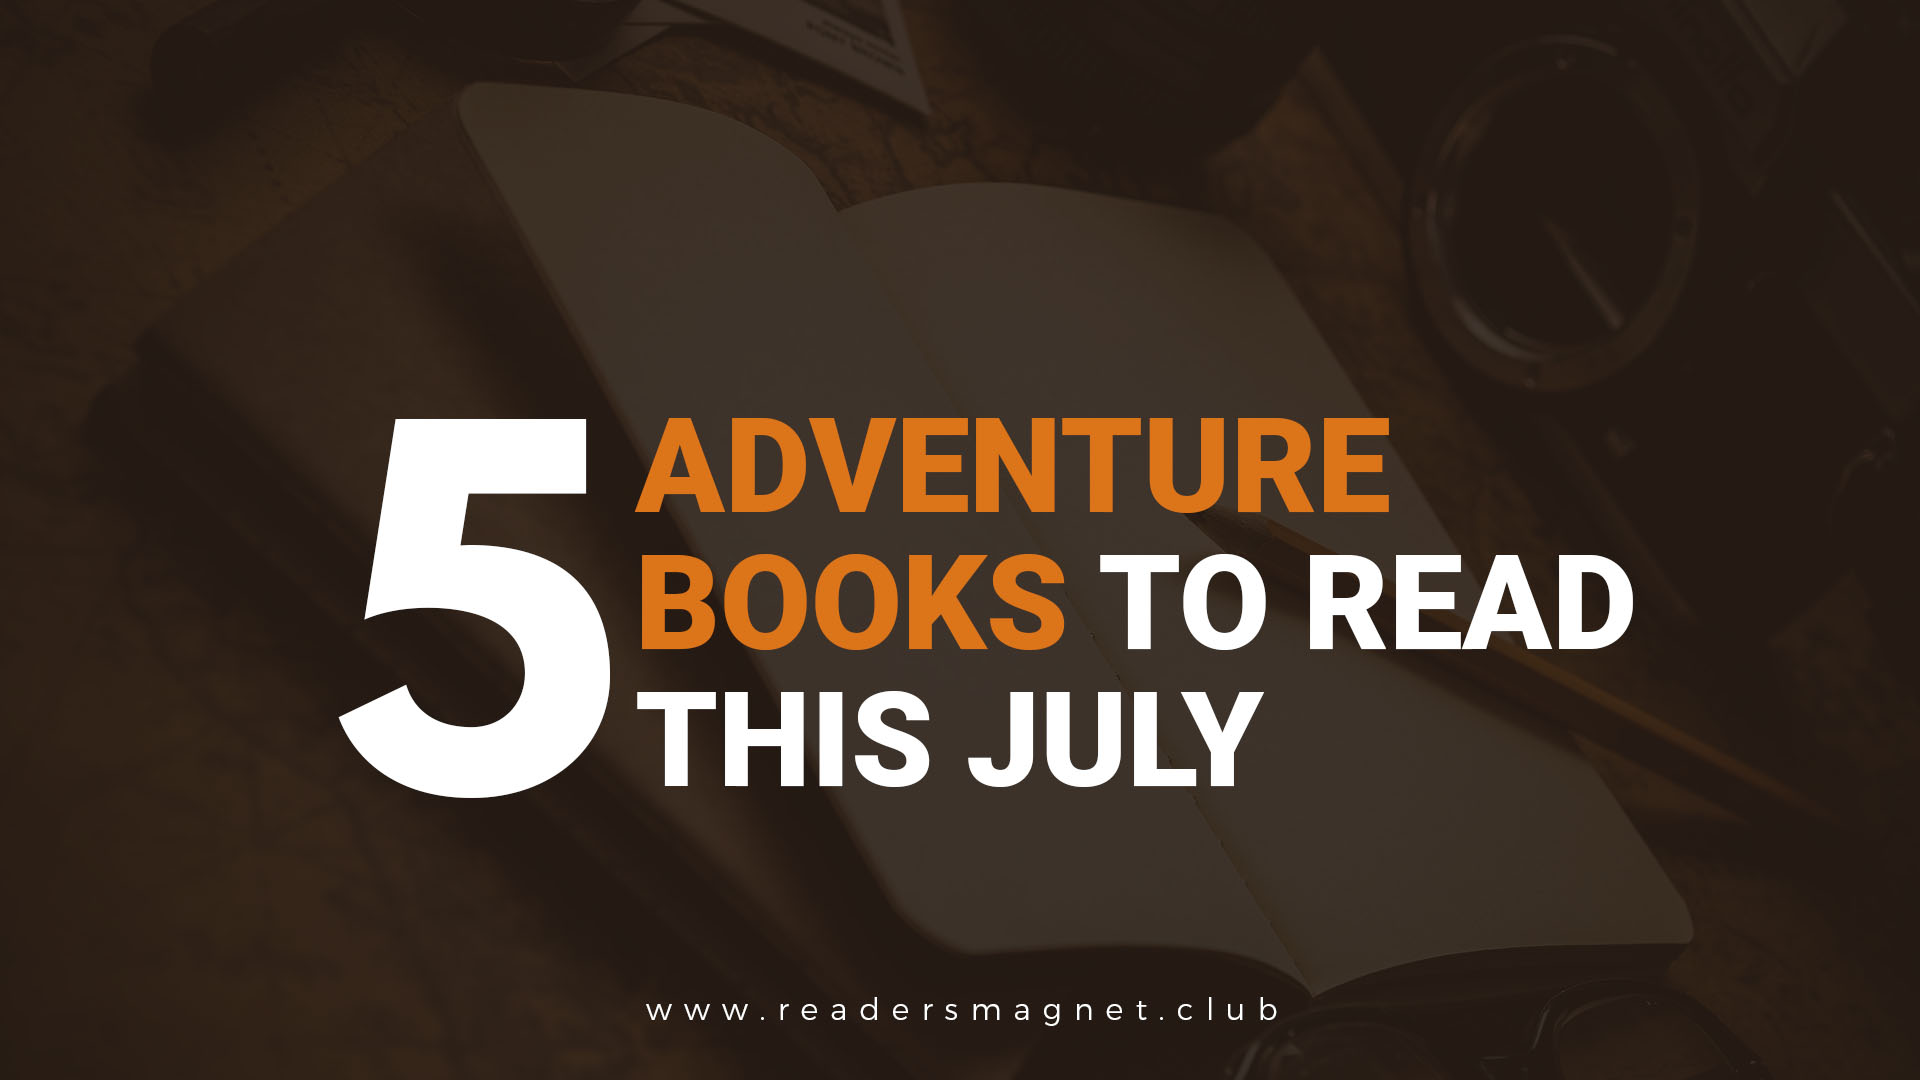 Five Adventure Books to Read This July banner